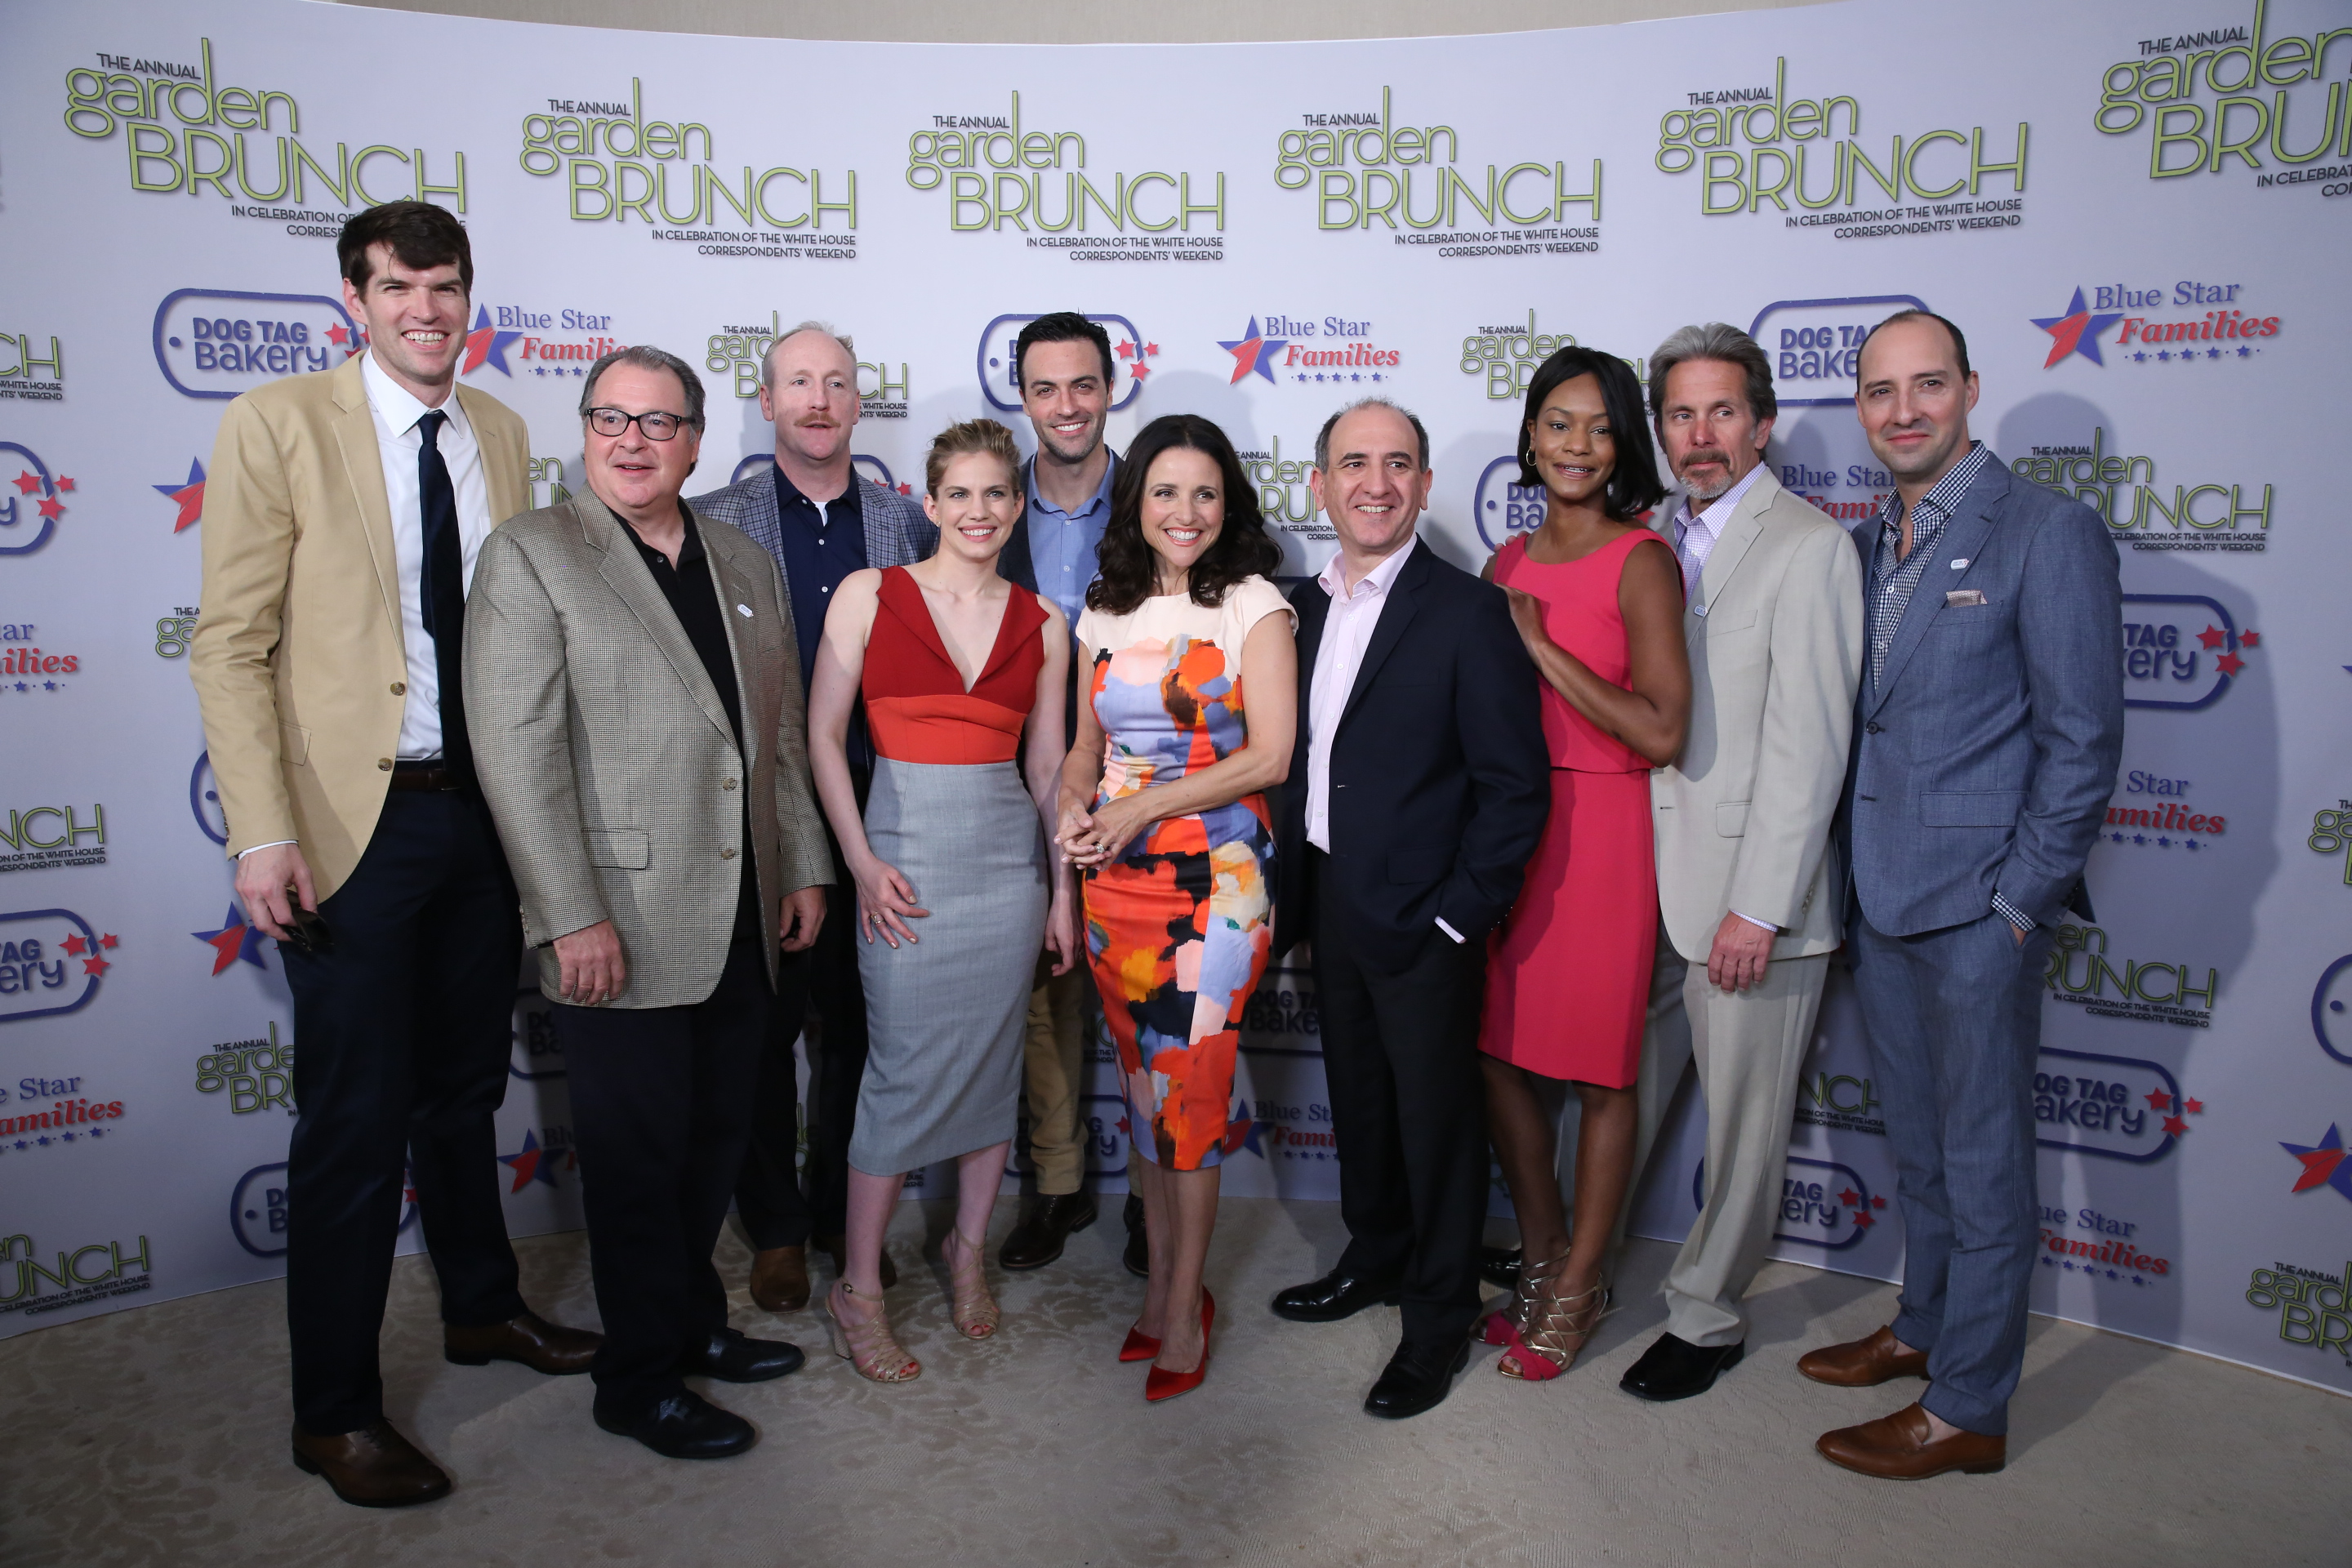 Cast of VEEP Garden Brunch 2014